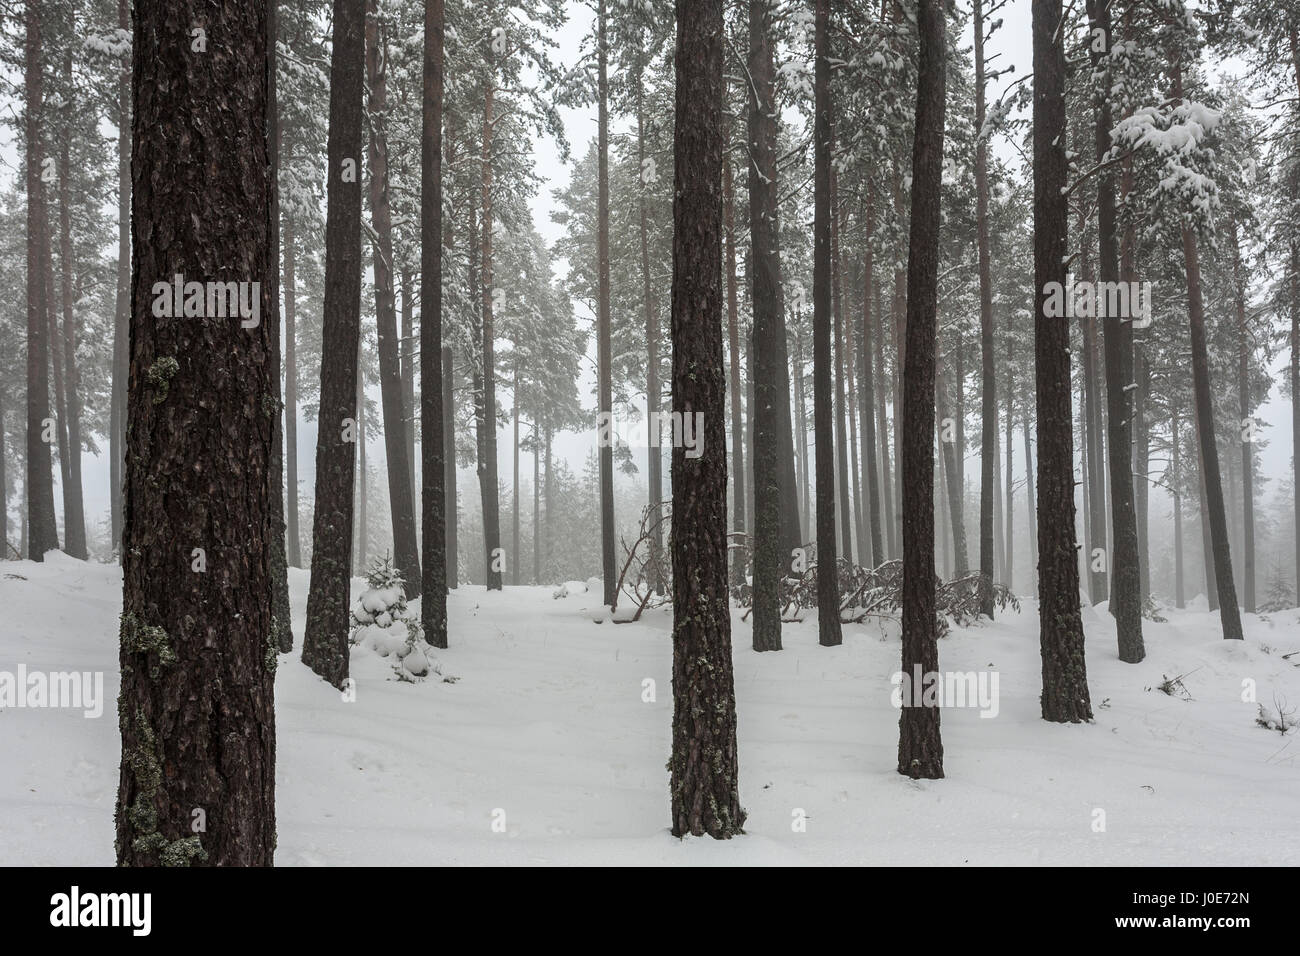 Misty pine forest covered with snow - Stock Image